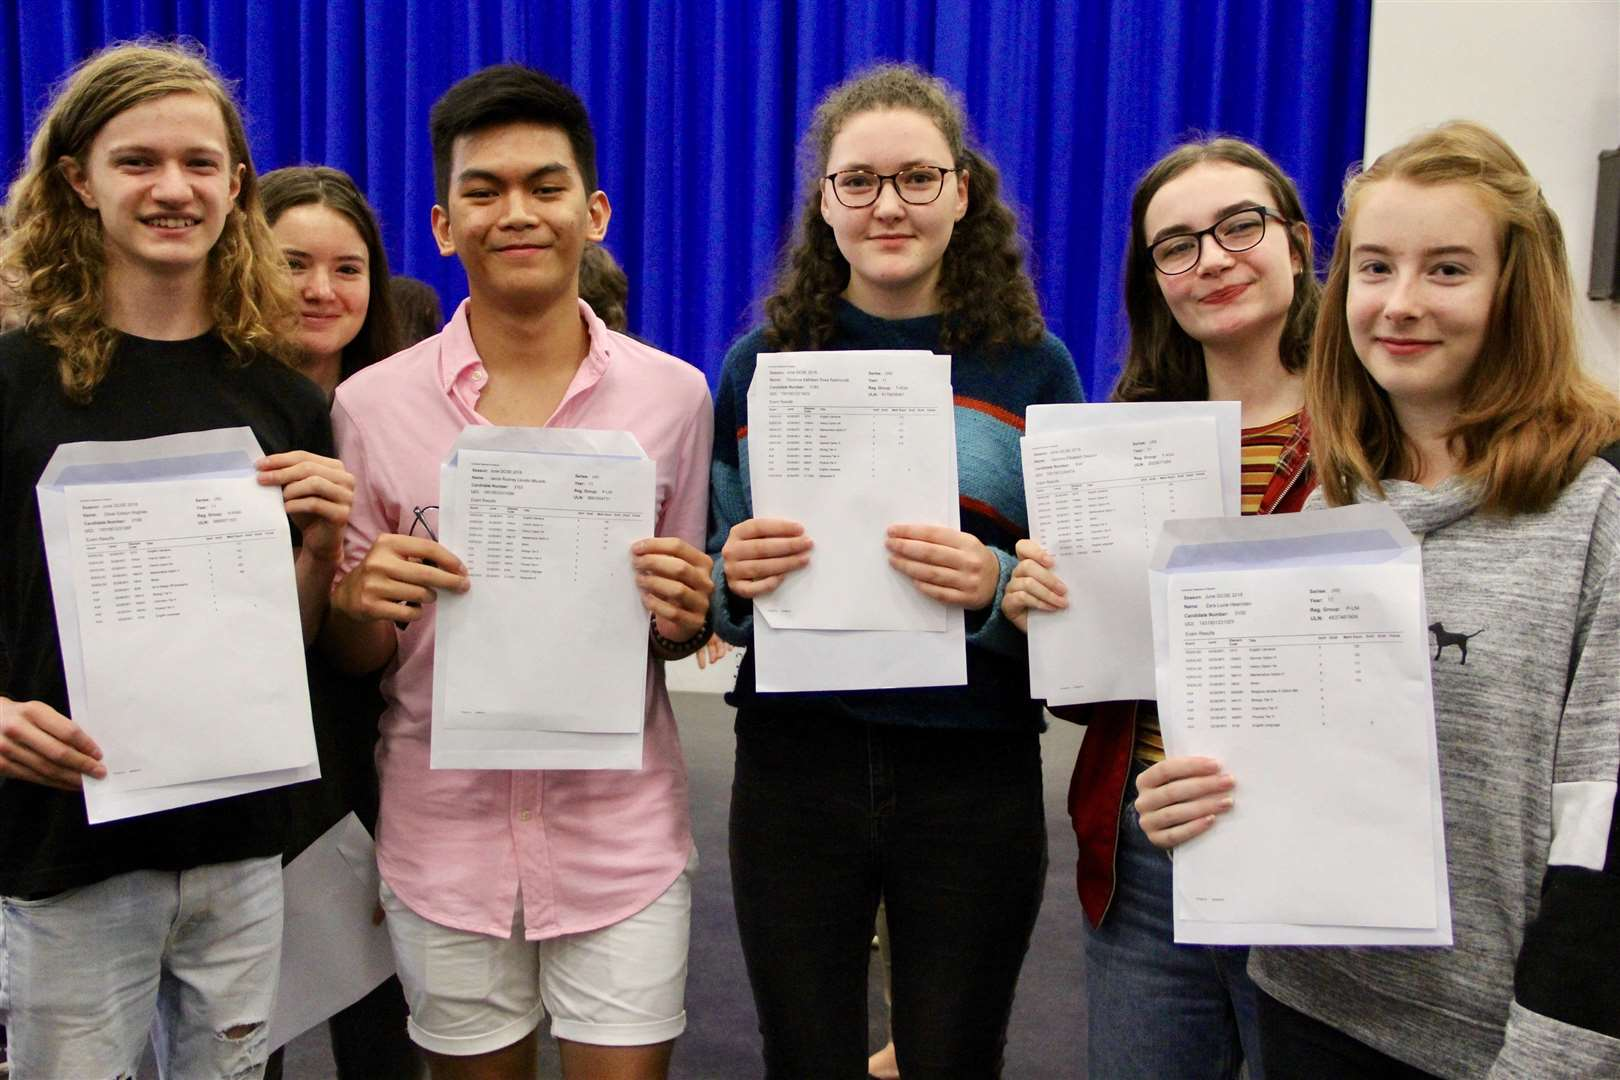 GCSE Results 2018 - Thomas Gainsborough School students celebrate their grades. Photo supplied by Dave Gooderham. (3771009)